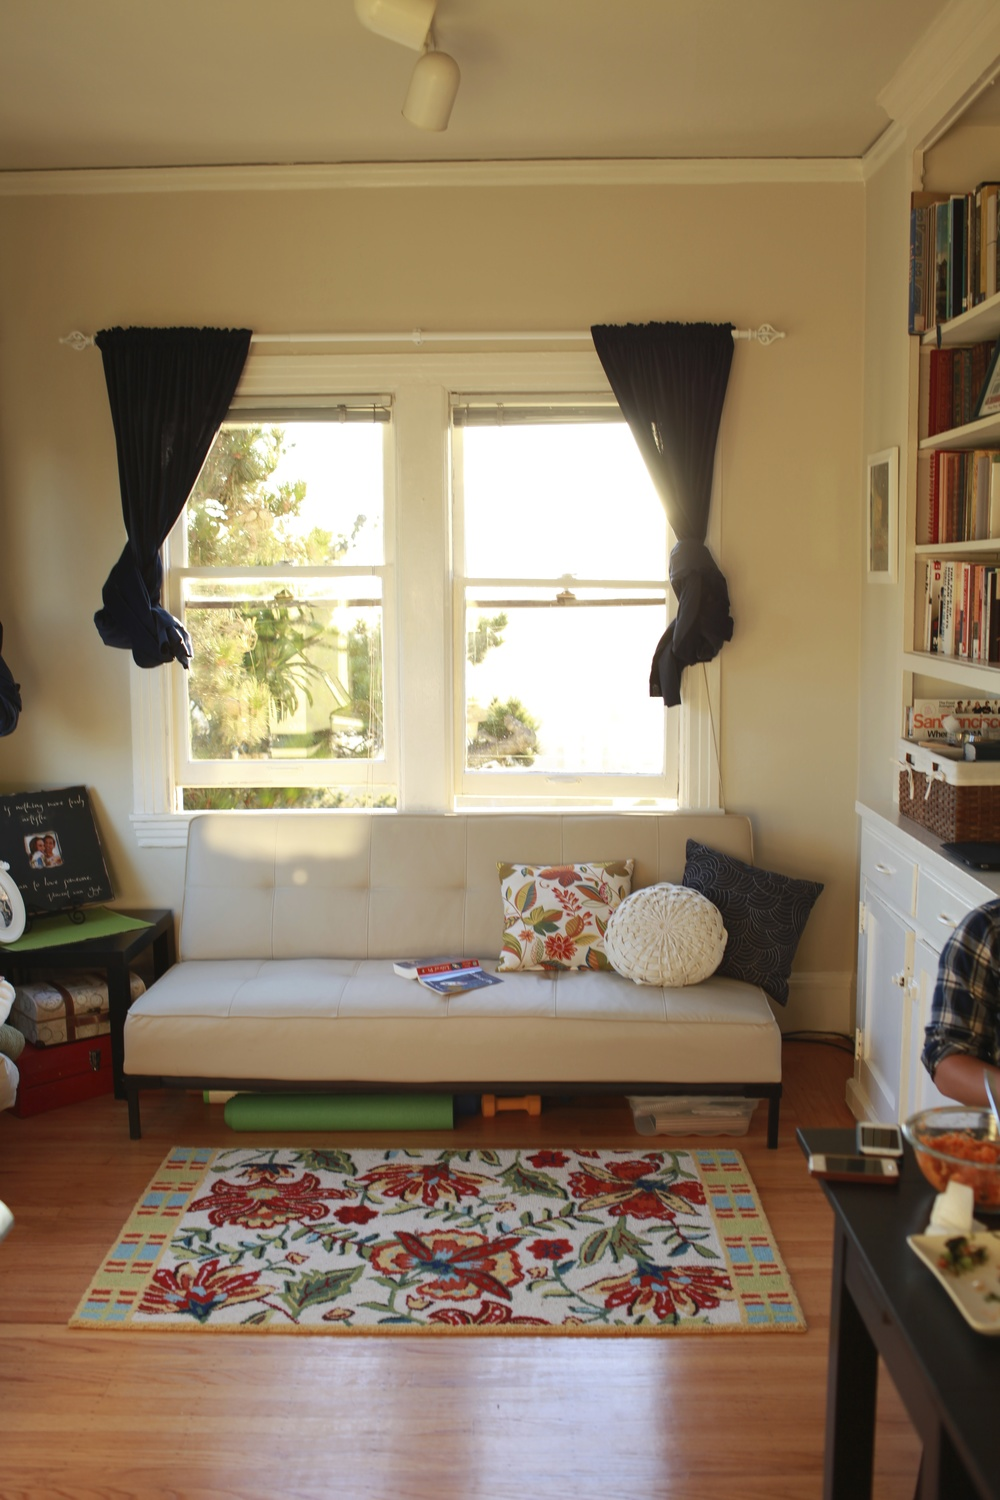 the sun bathed the SW-facing apartment in warm afternoon light, rendering it a sanctuary for the senses. living room pictured here.